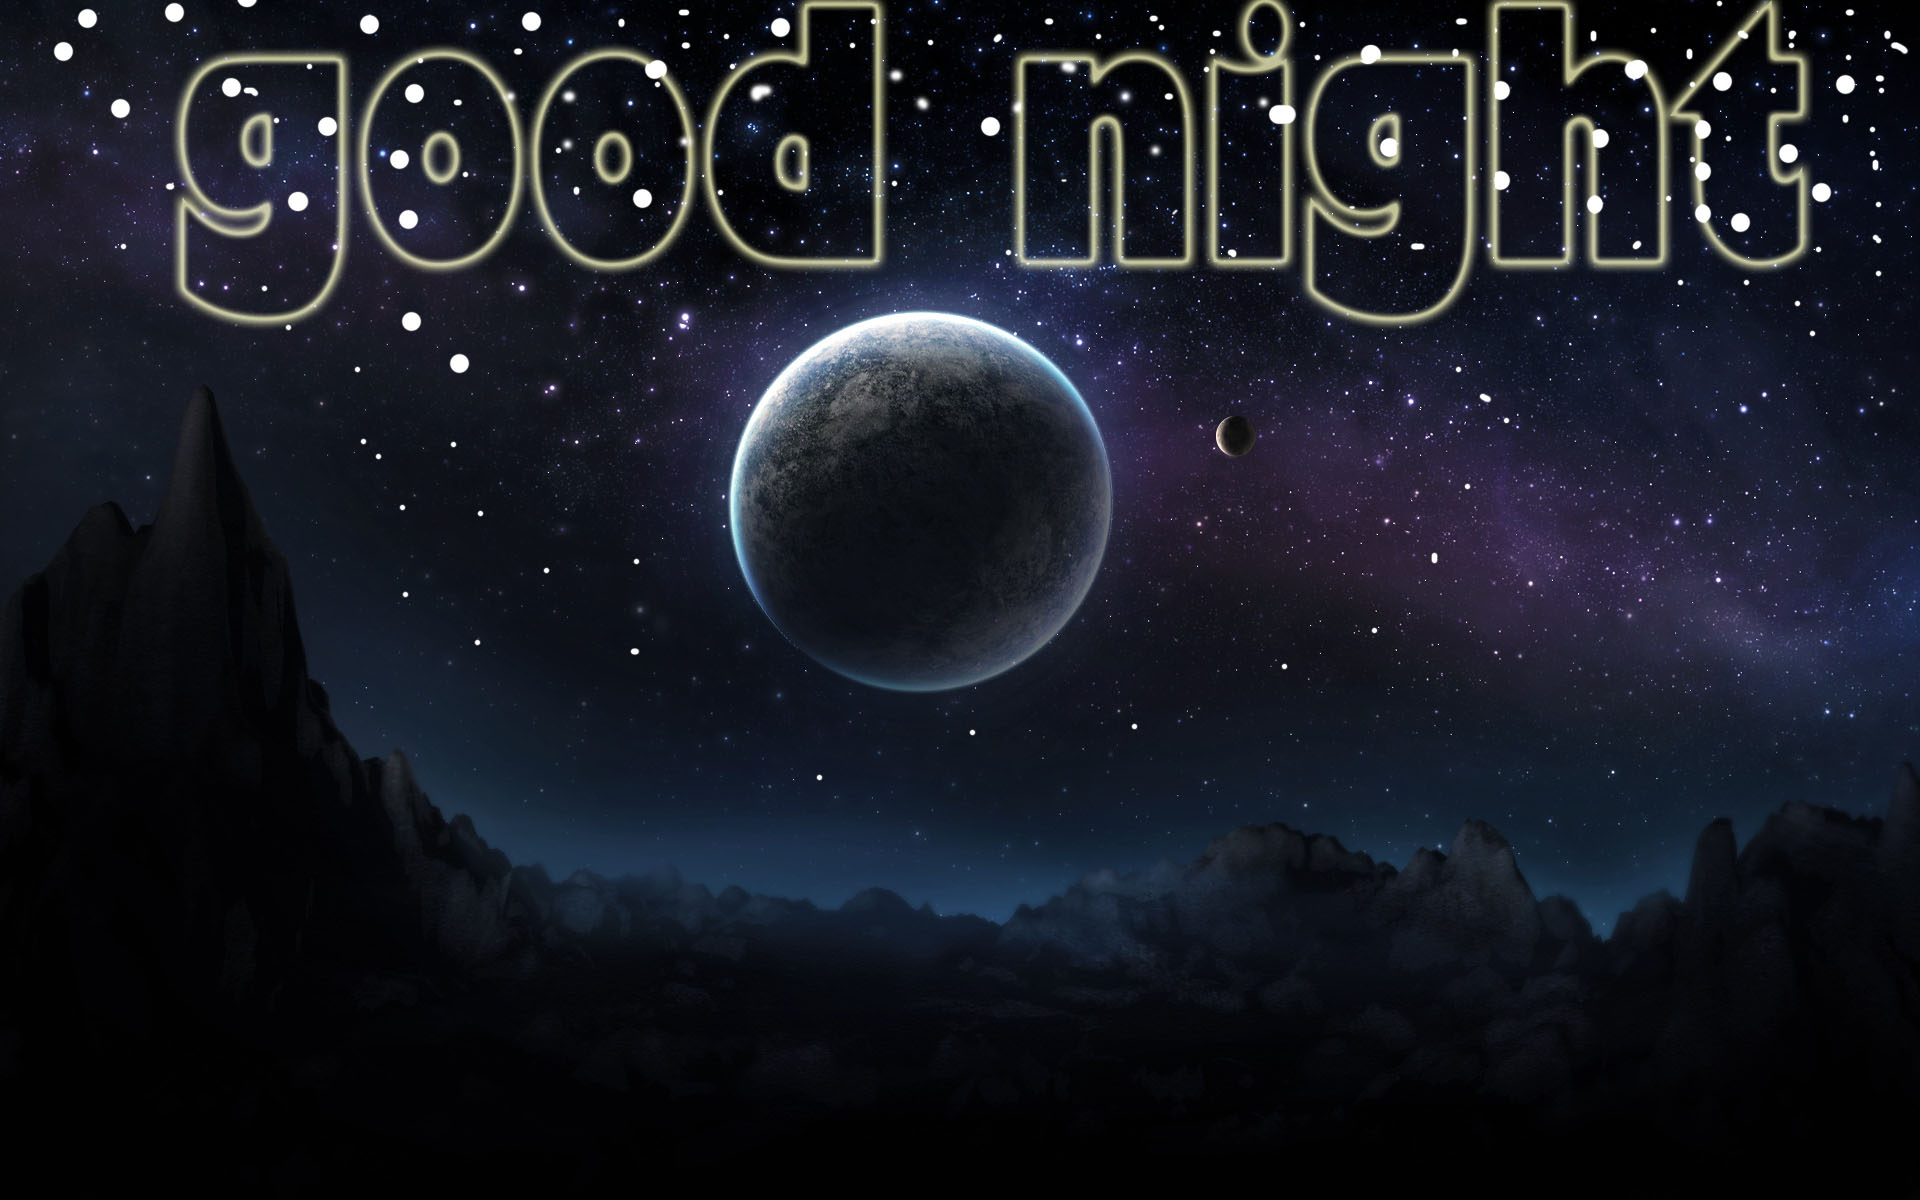 Gn Image